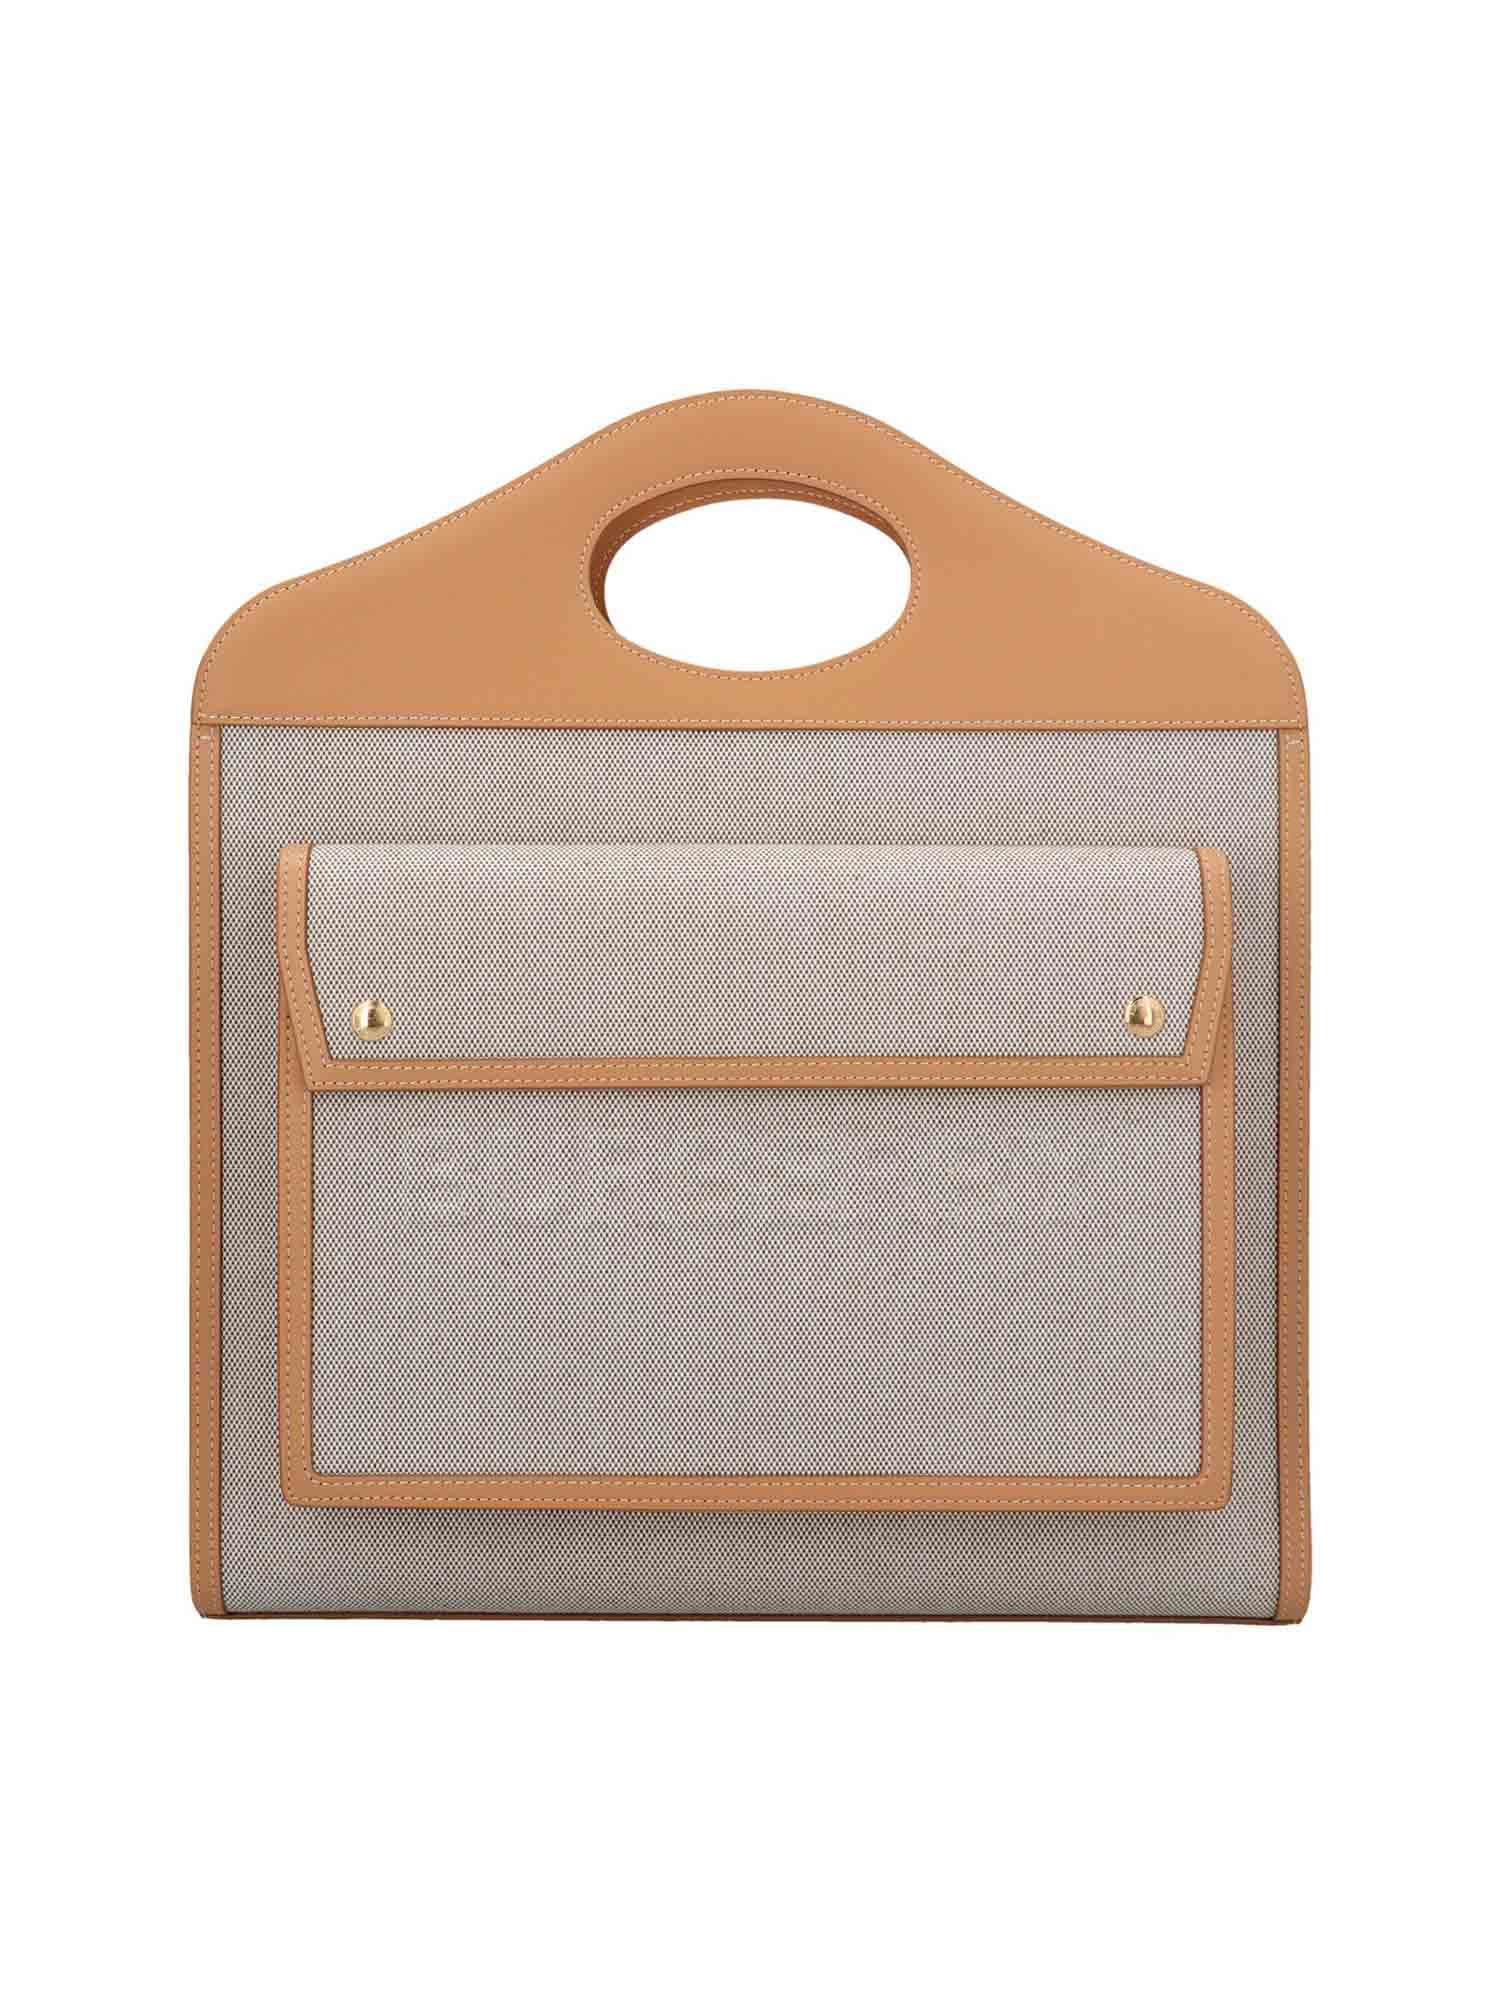 Burberry Canvases MEDIUM POCKET BAG IN FAWN AND SAND COLOR